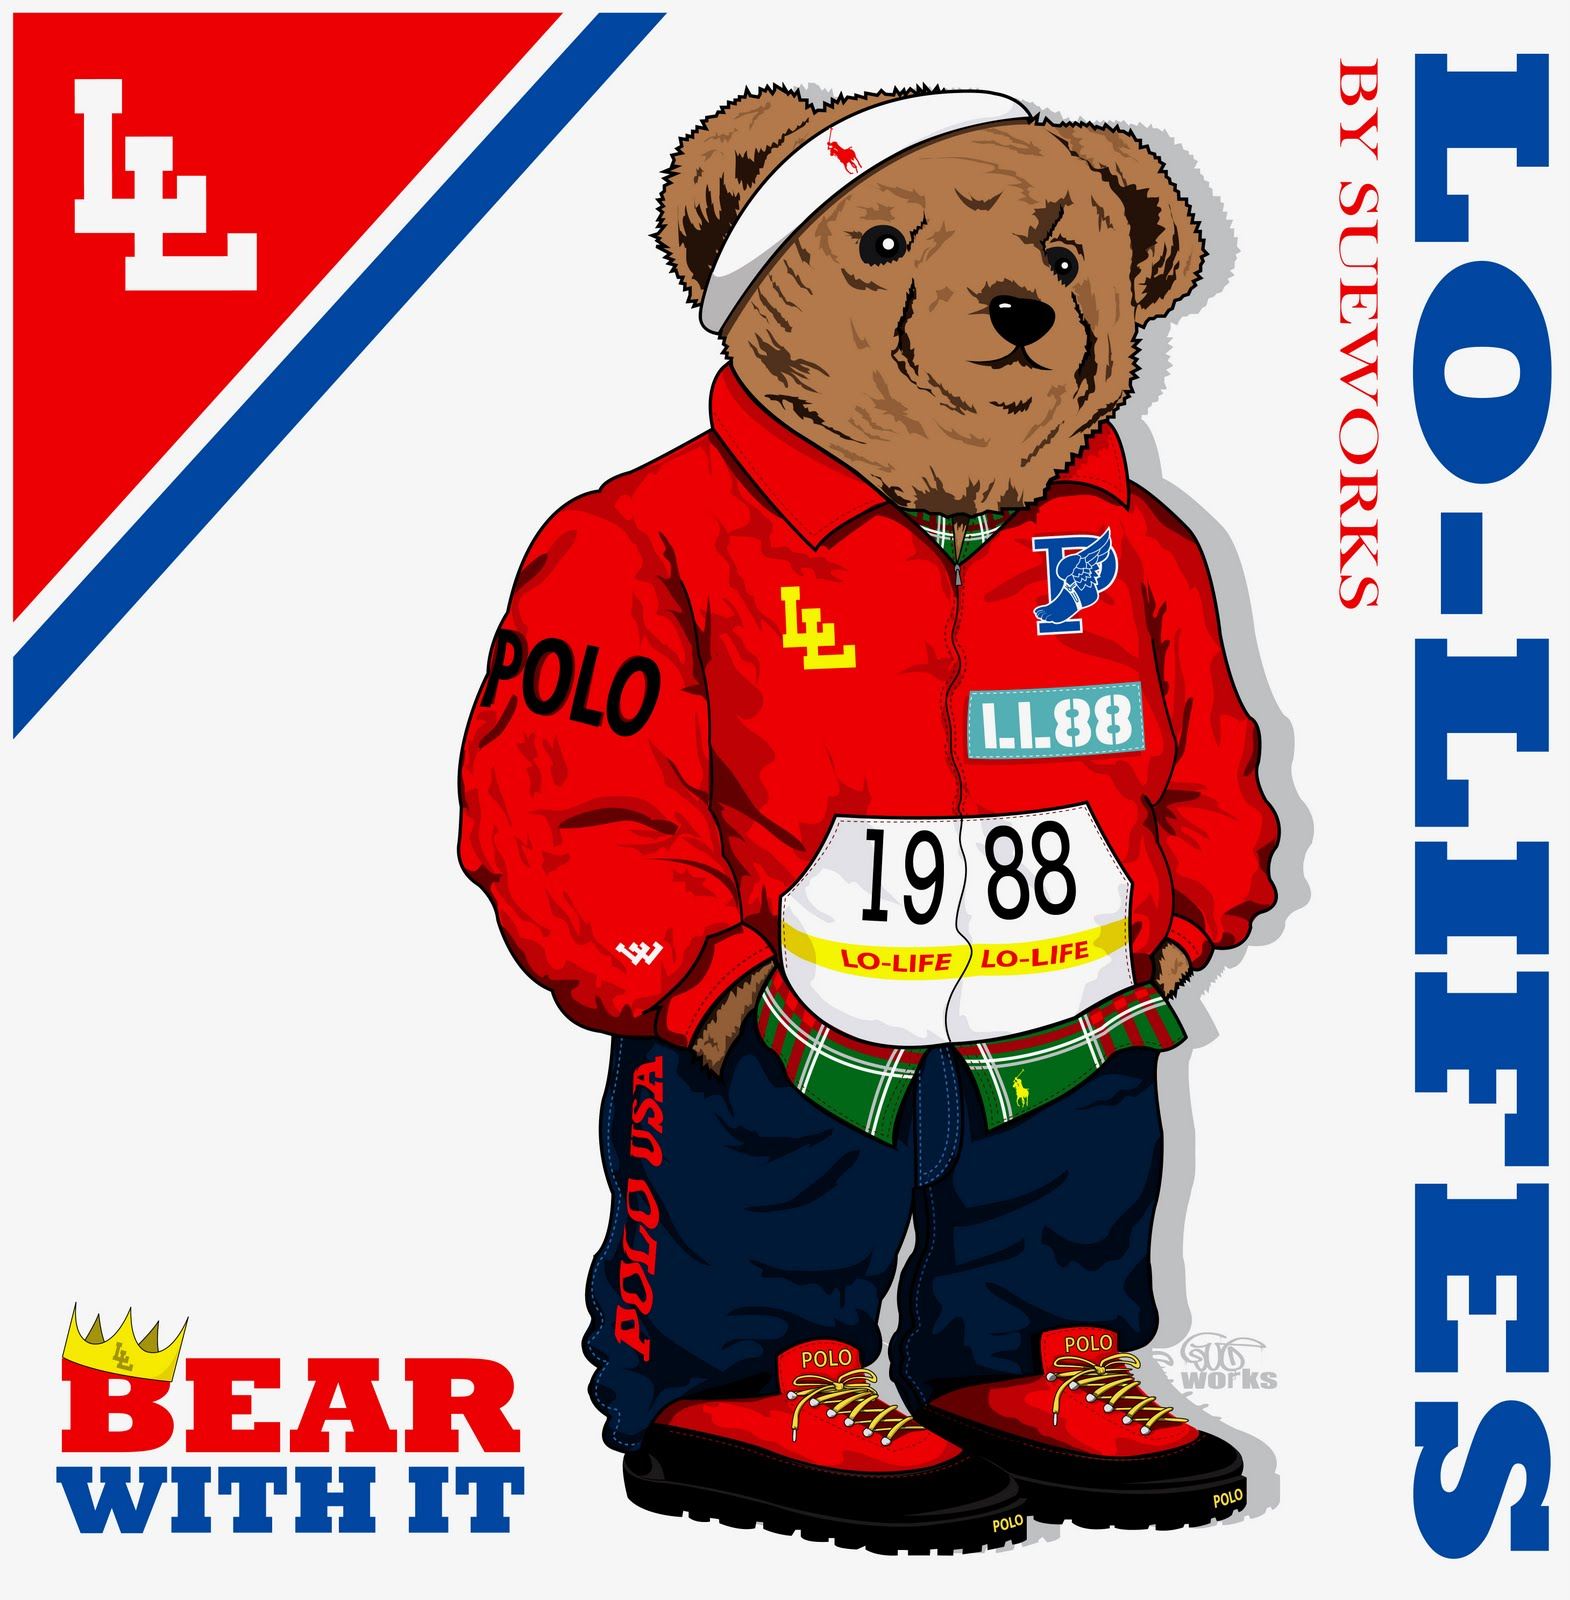 ubmassive lo lifes bear with it polo logo vector free download polo sport ralph lauren logo vector